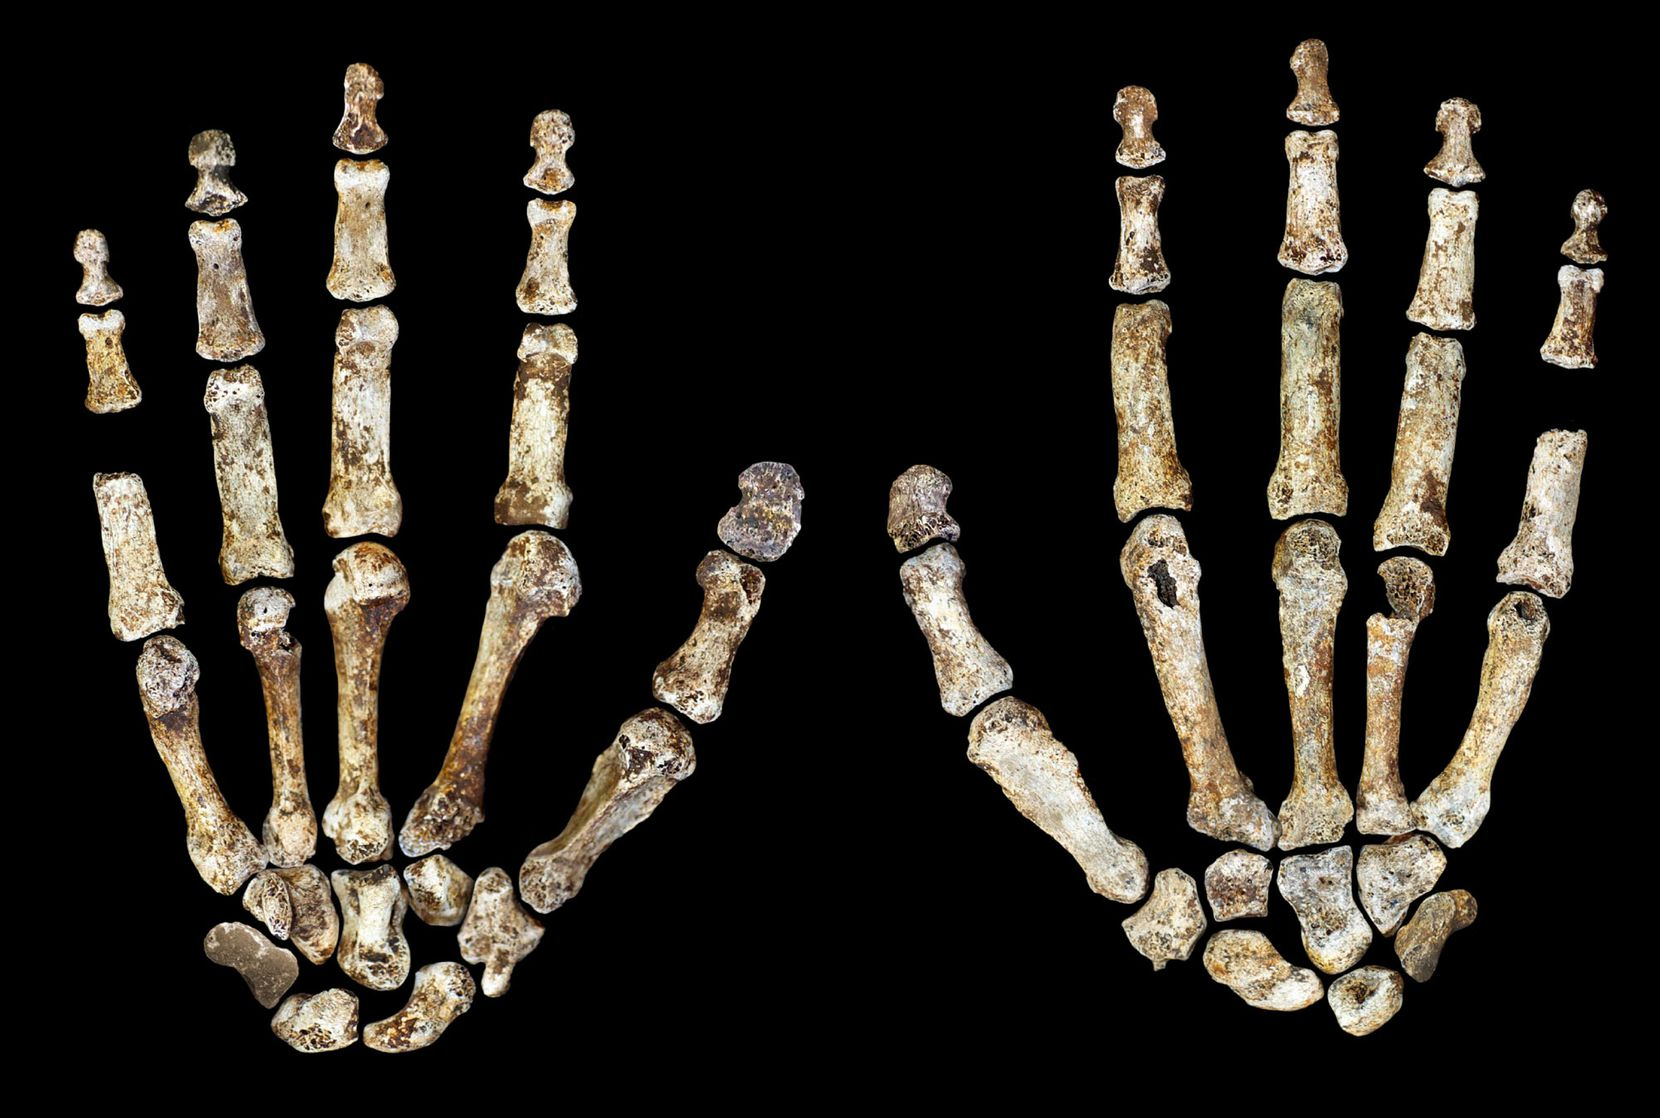 The complete hand of Homo naledi, shown in palmar (left) and dorsal (right) views.